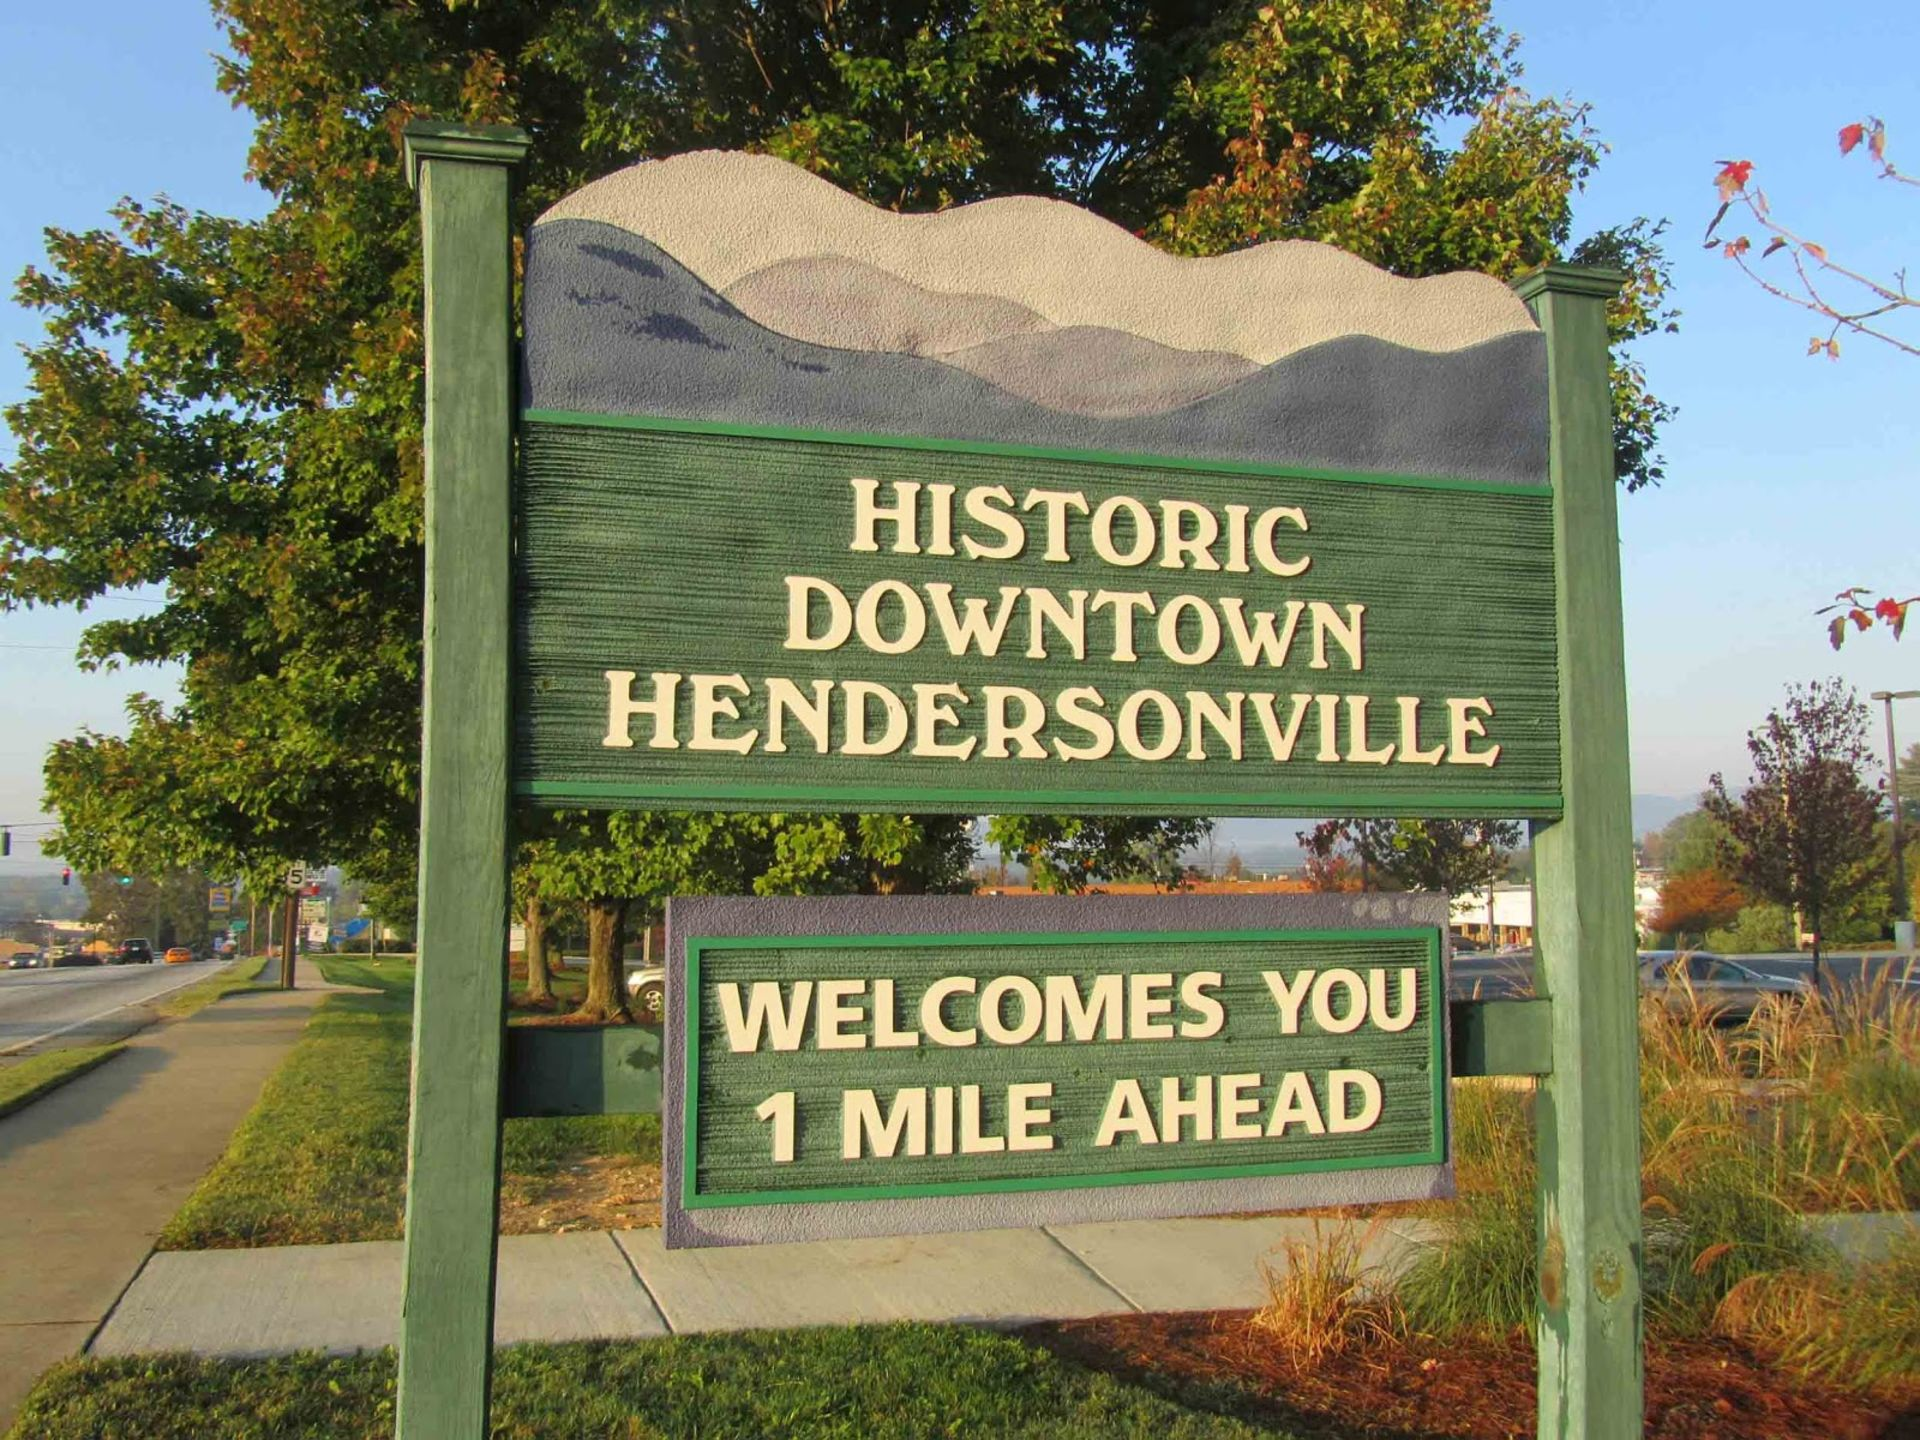 What We Love About Hendersonville